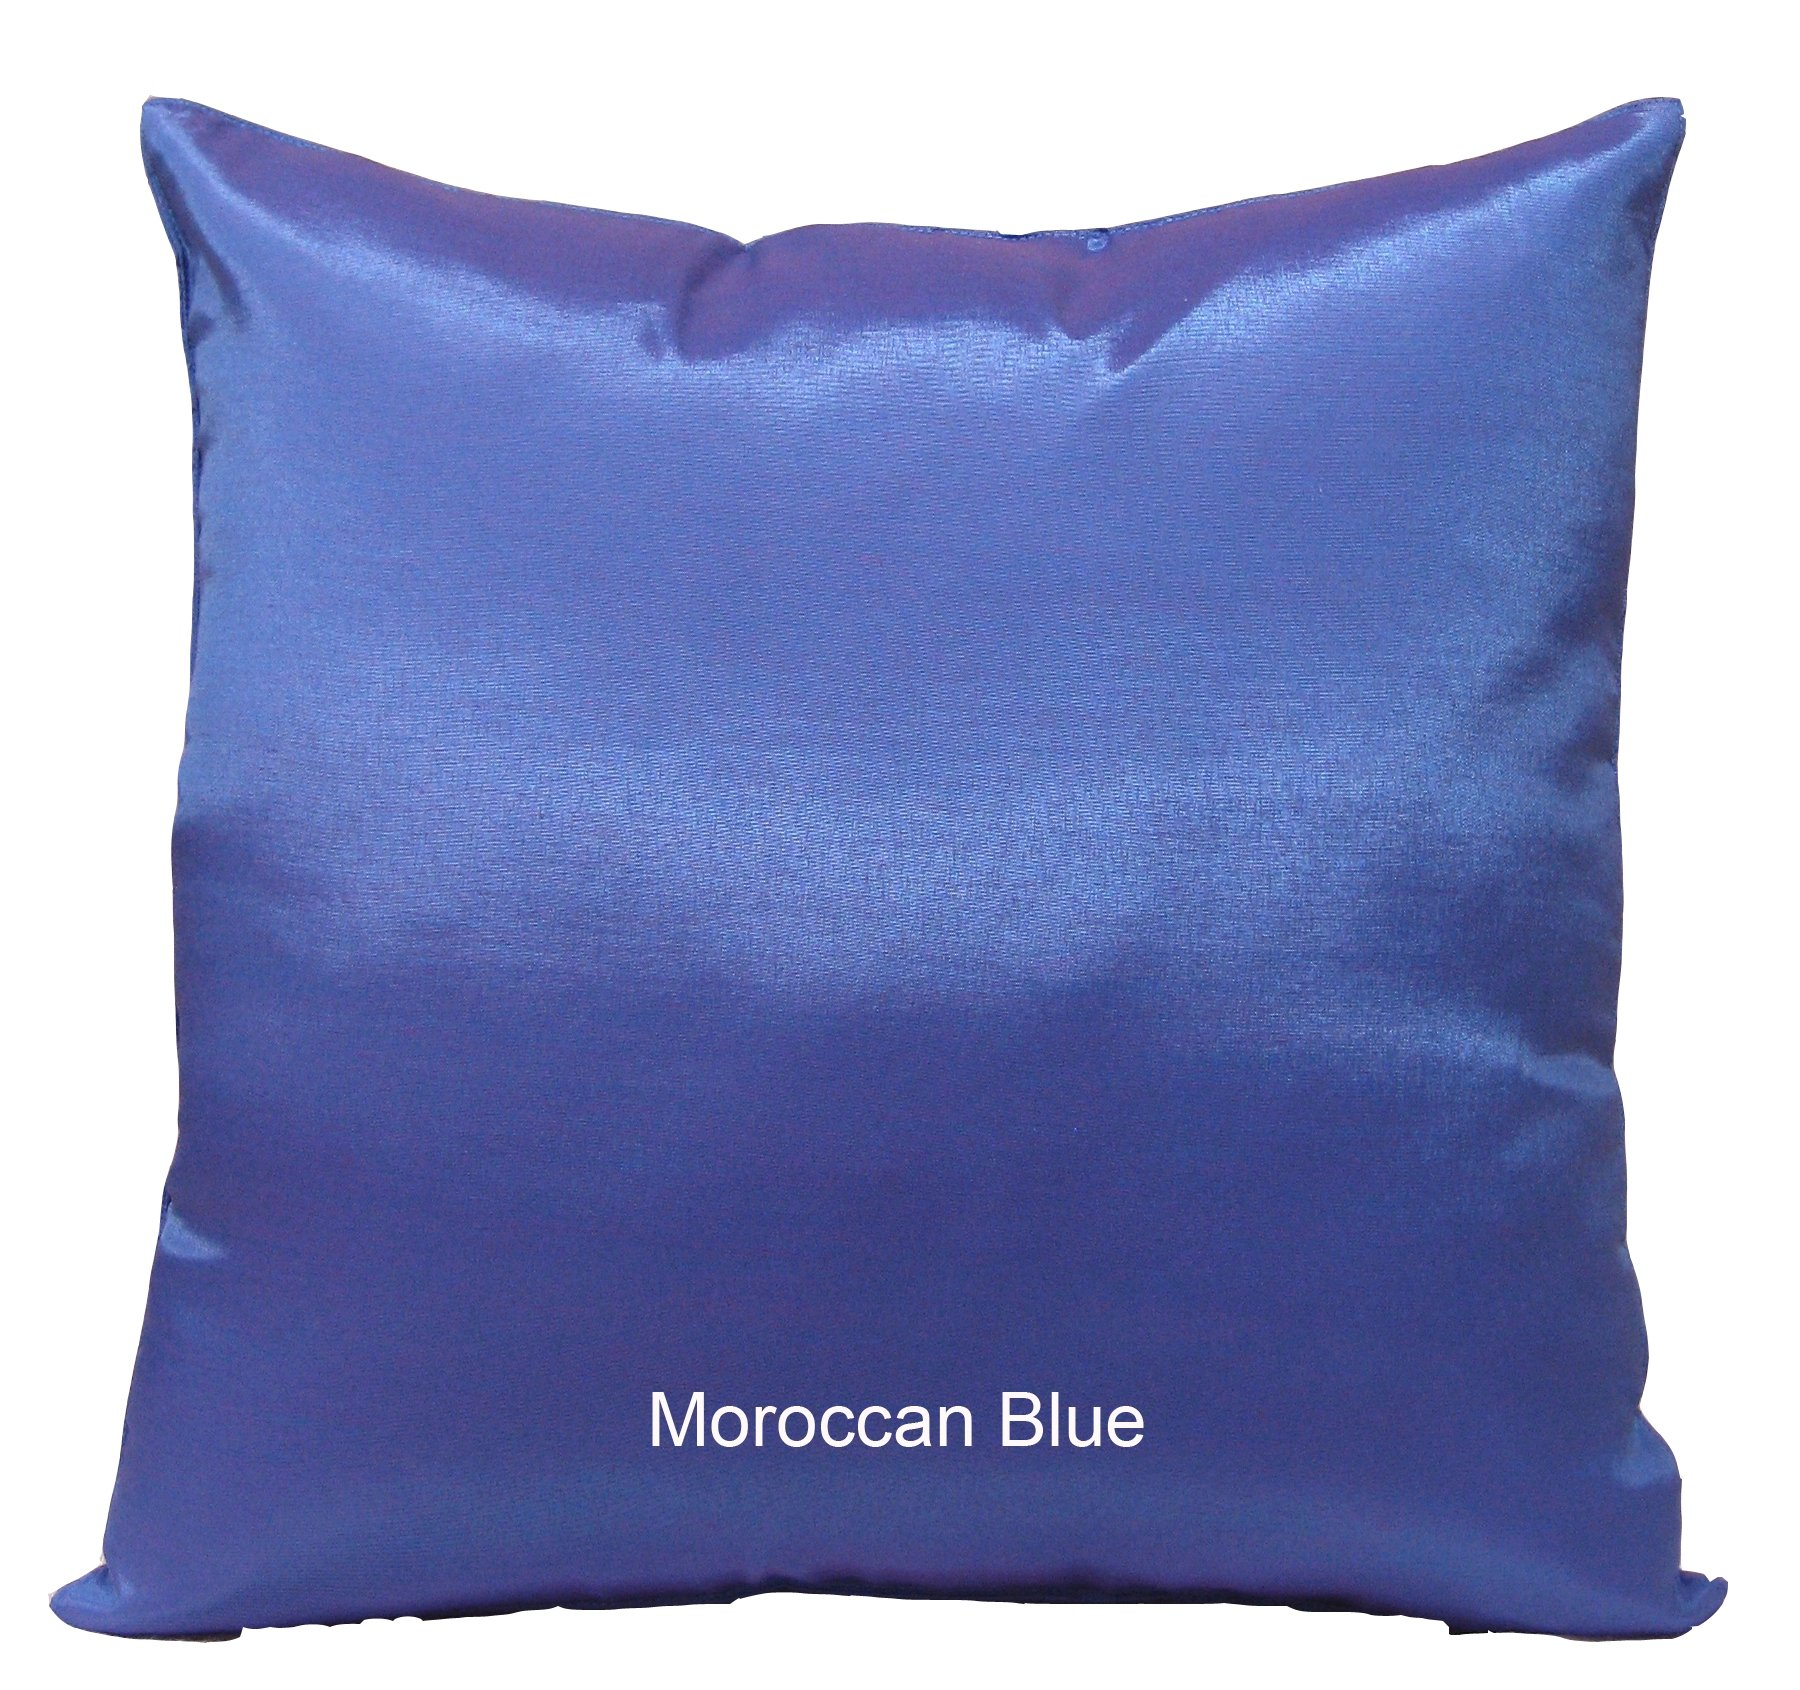 Shopping The Globe - 1 Thai Silk Look 16''x16'' Pillow Cover (Pillow Not Included) - Moroccan Blue by Shopping The Globe